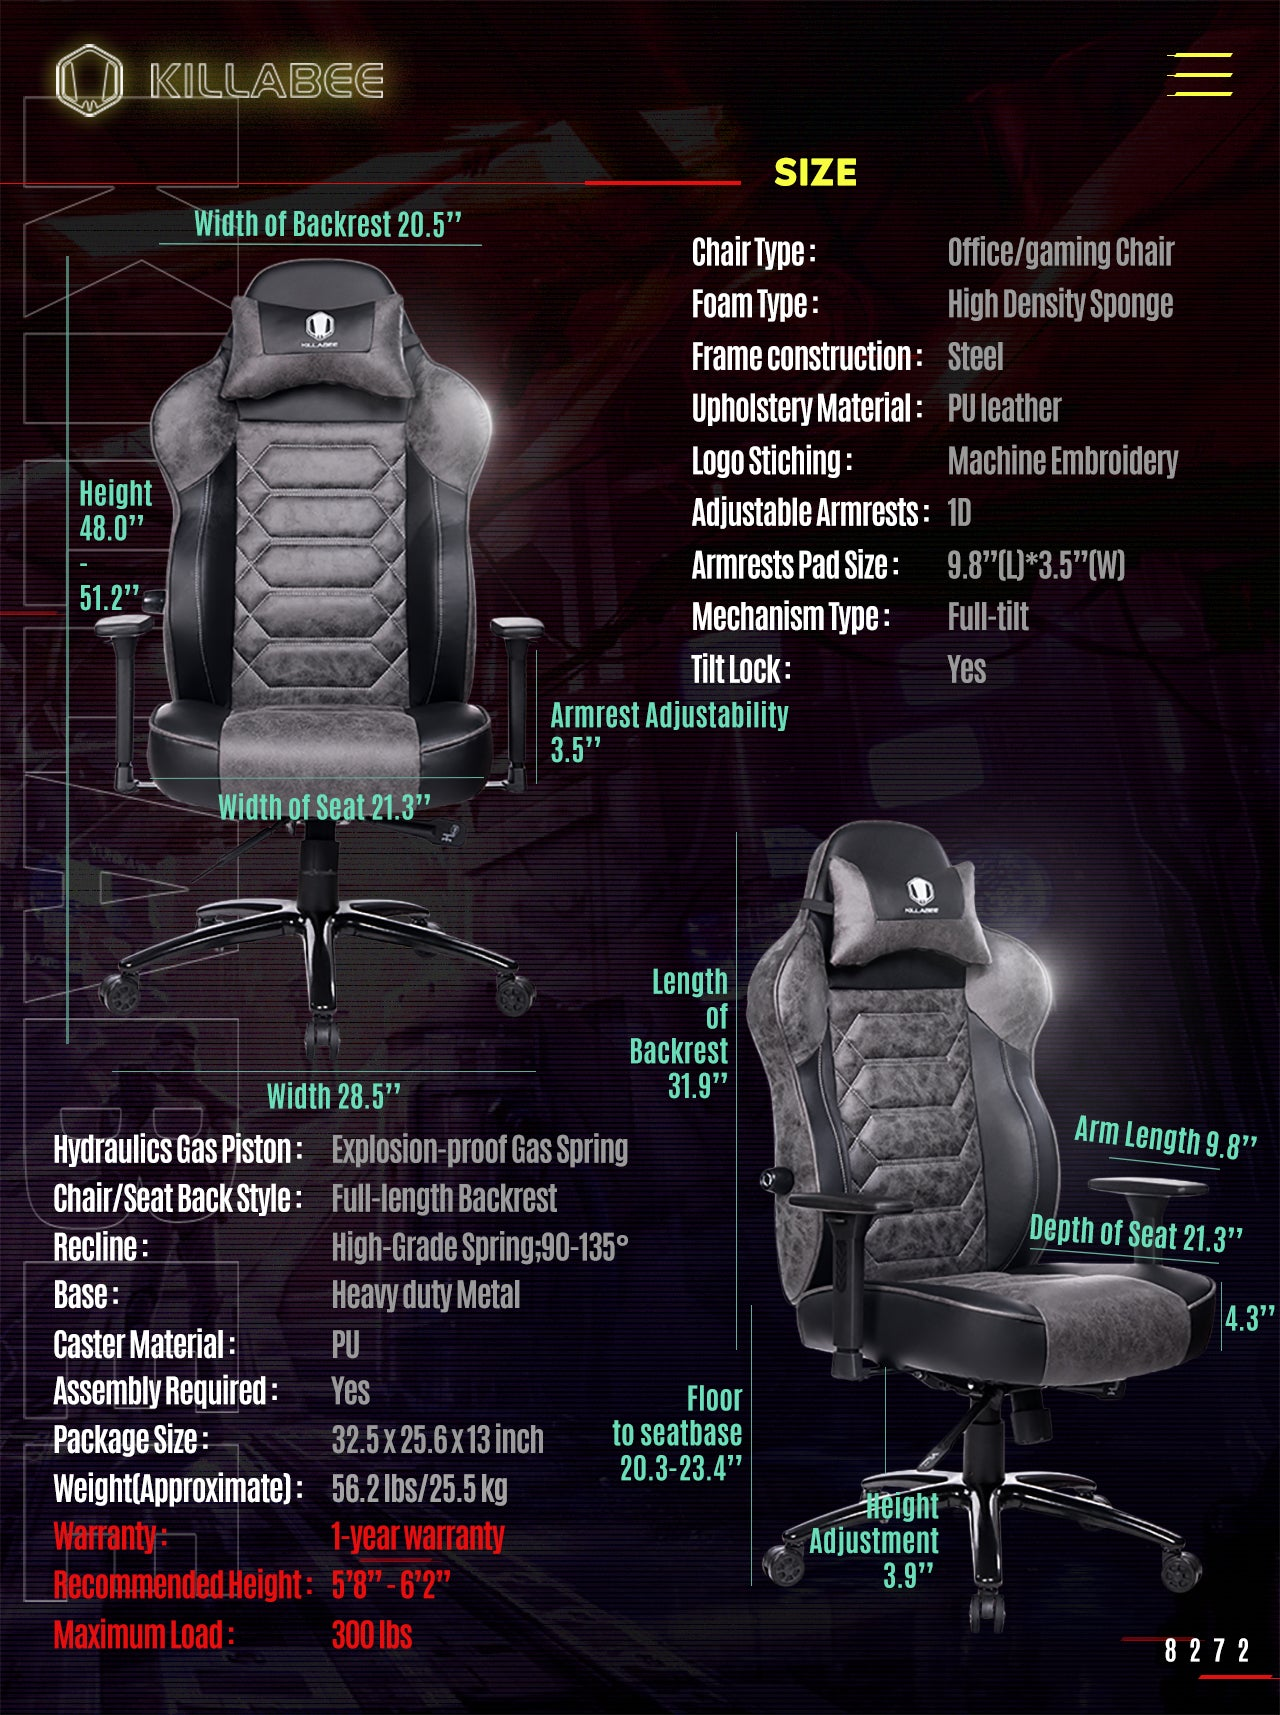 KILLABEE ERGONOMIC GAMING CHAIR 8272 GRAY SPECIFICATION